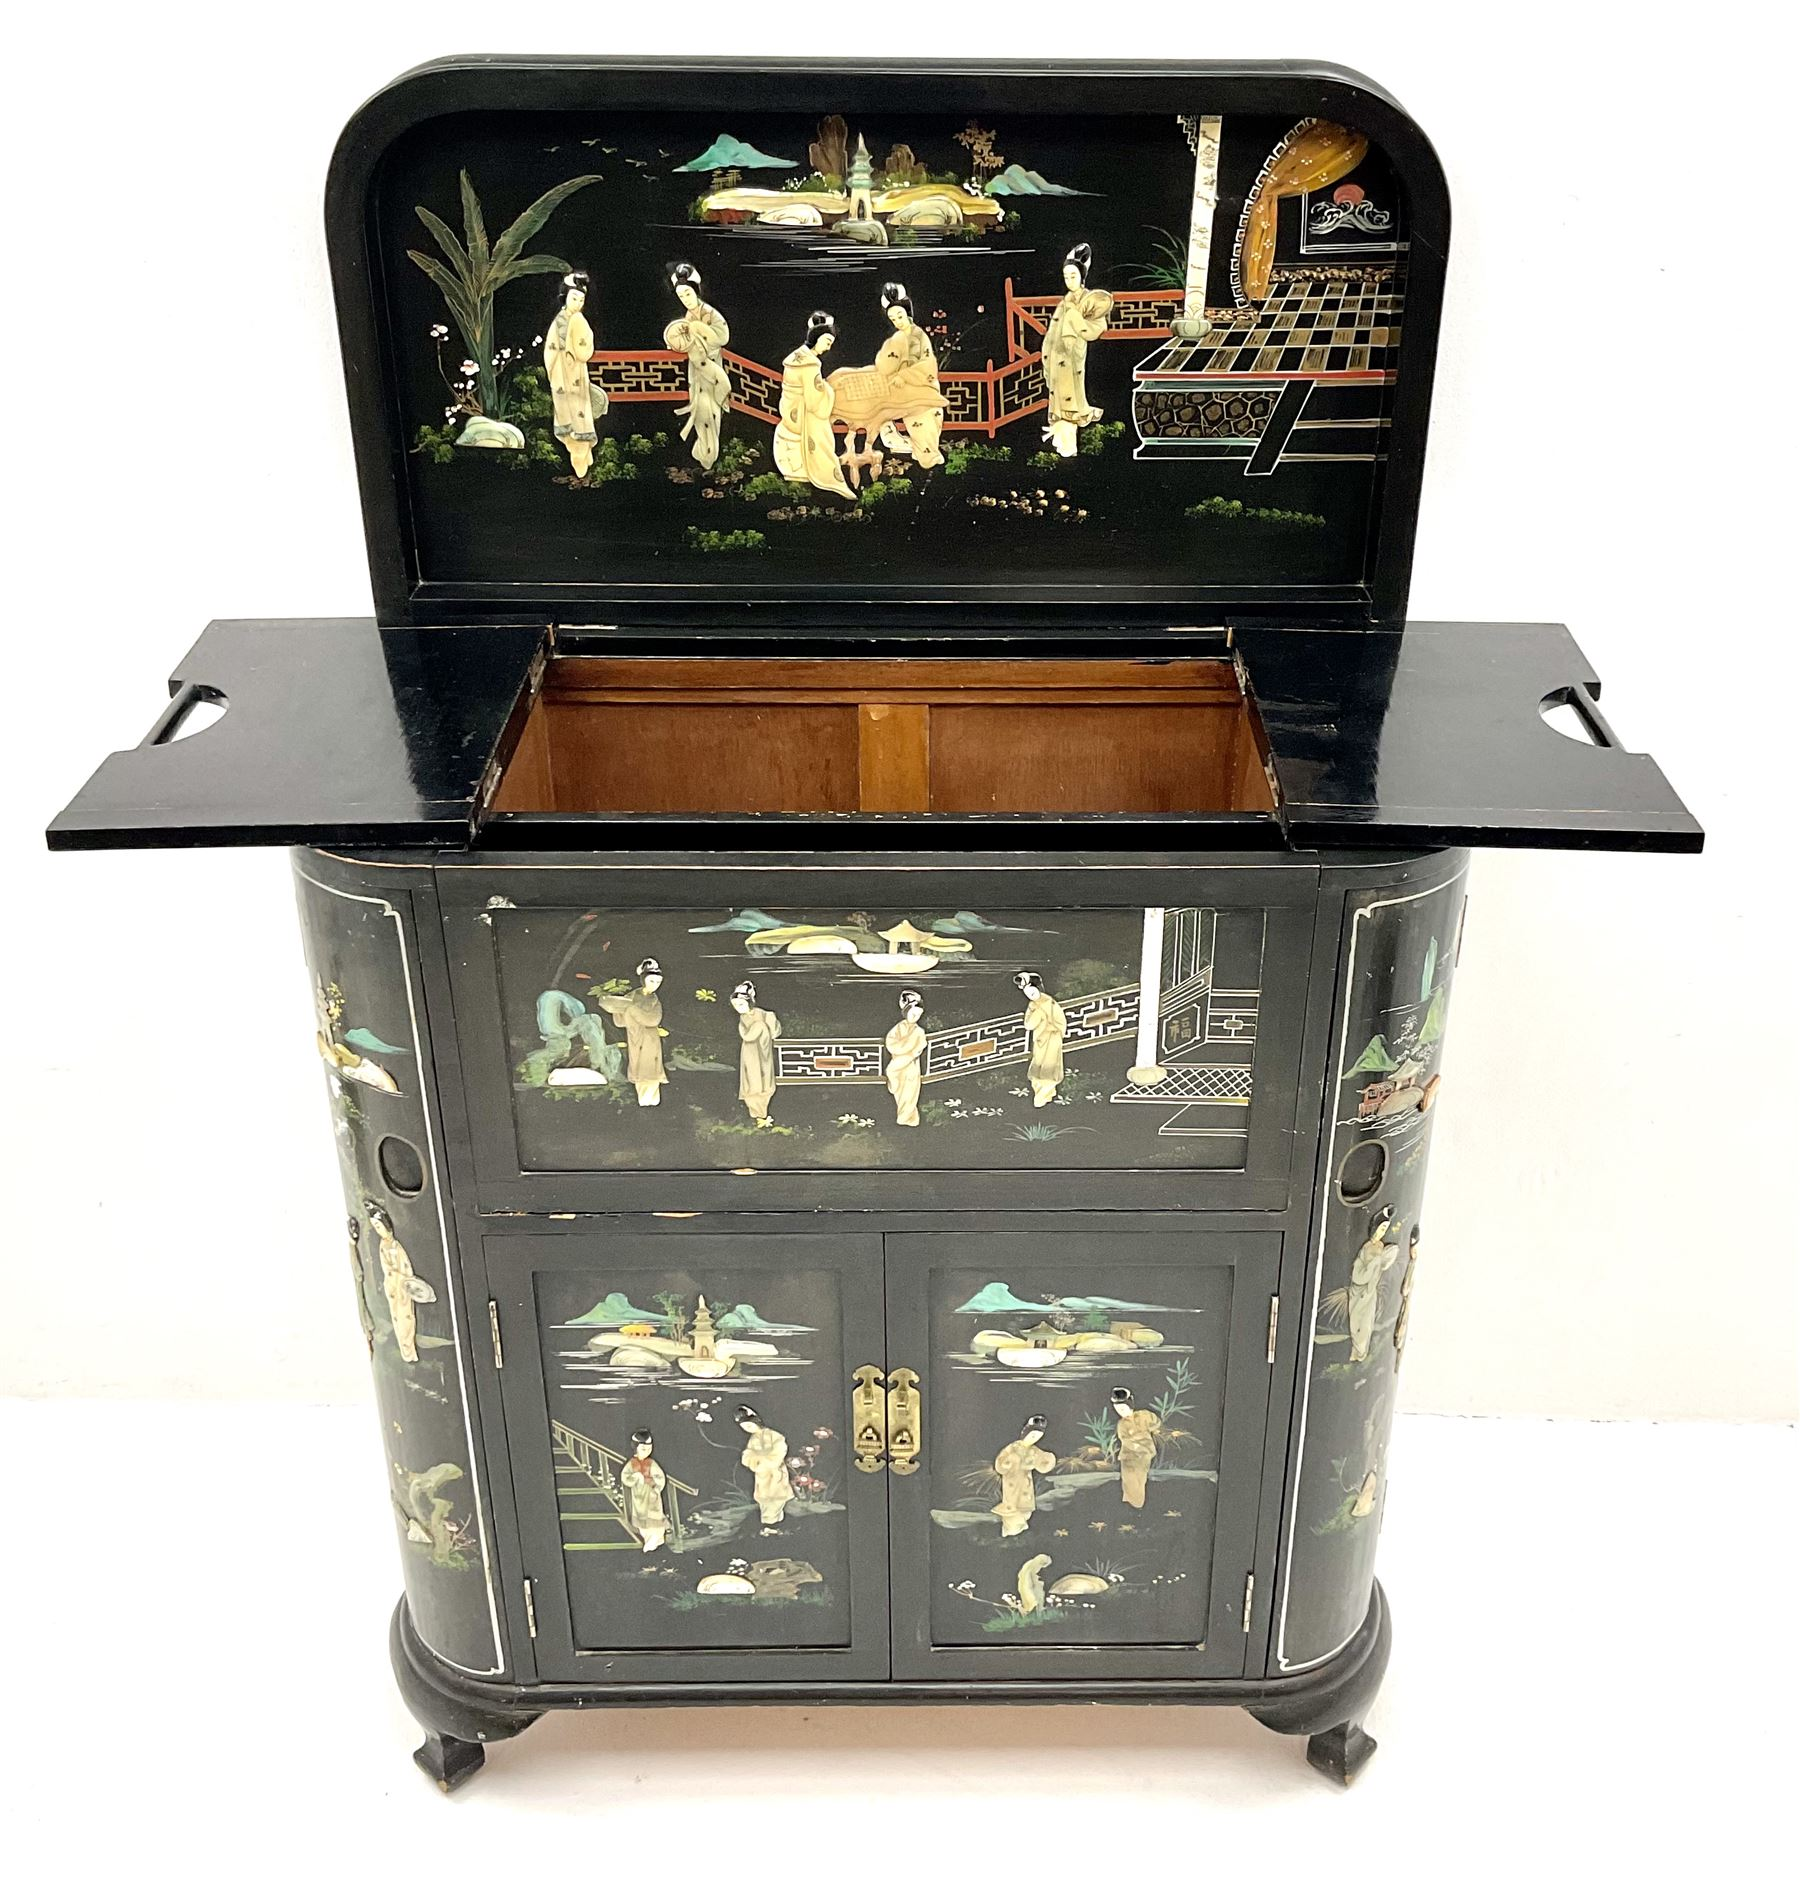 Hong Kong black lacquered cocktail cabinet with shibiyama style decoration of figures in a garden - Image 6 of 6